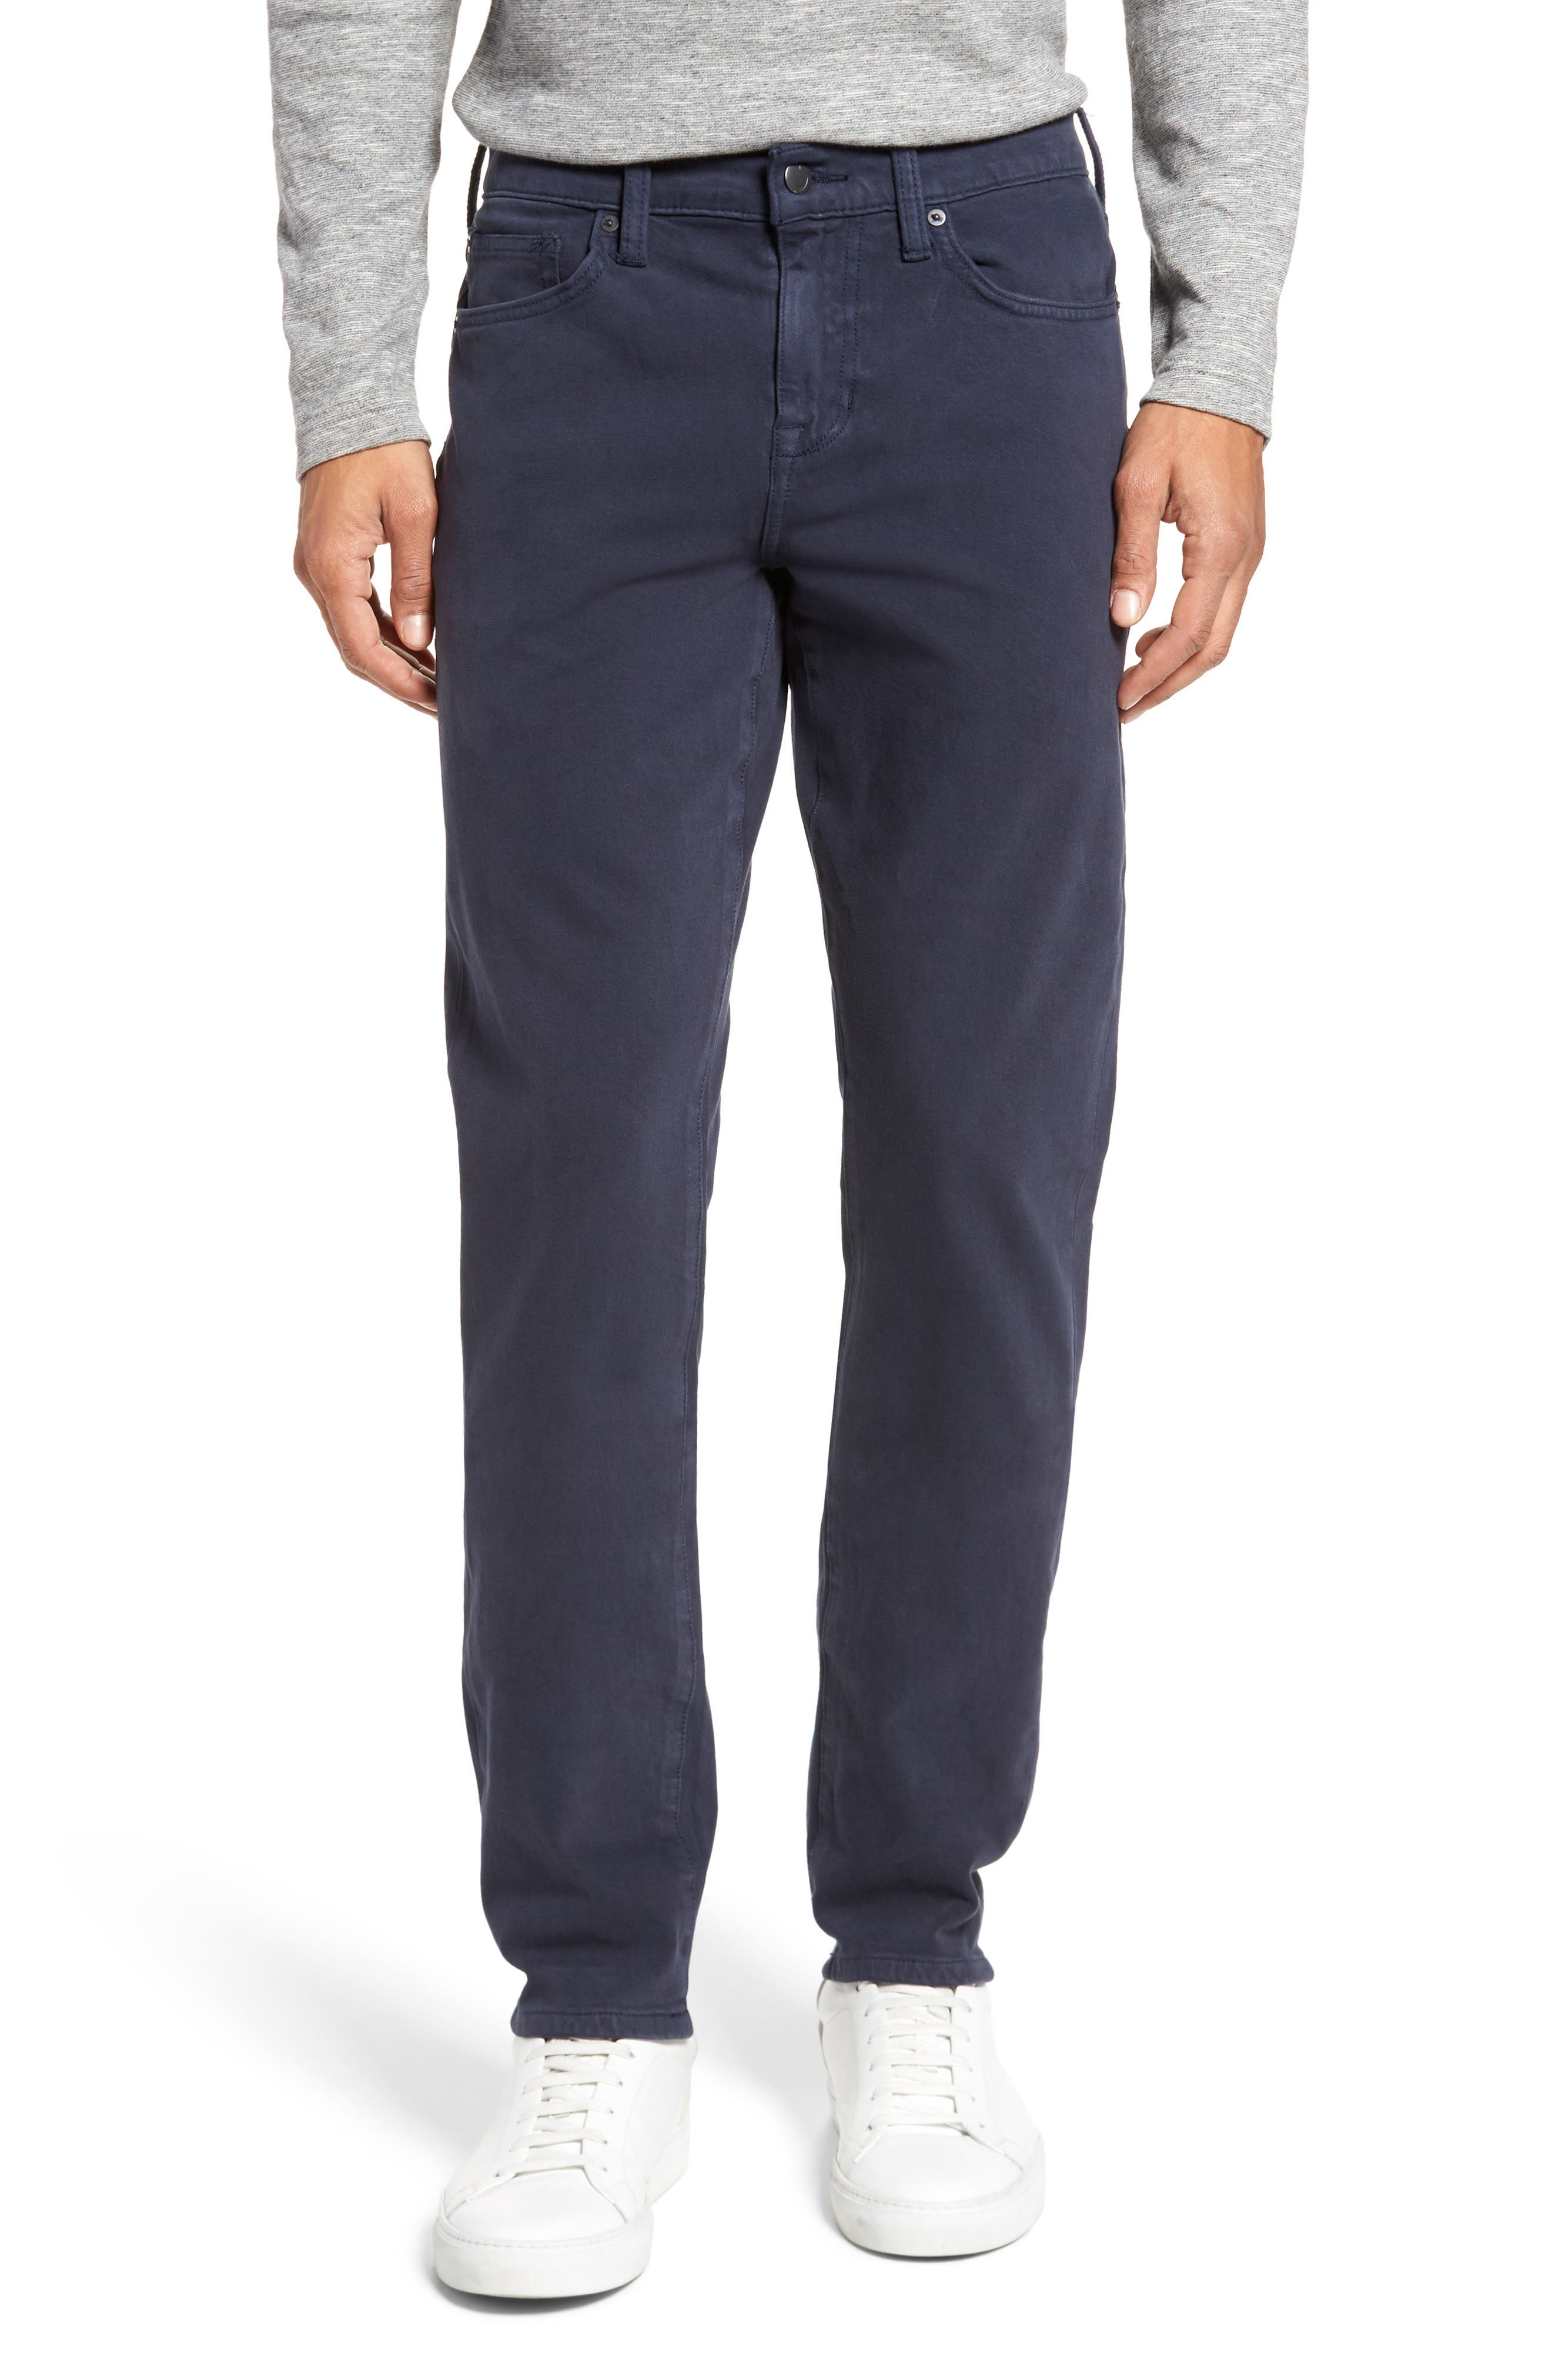 Kinetic Slim Fit Twill Pants,                         Main,                         color, NAVY